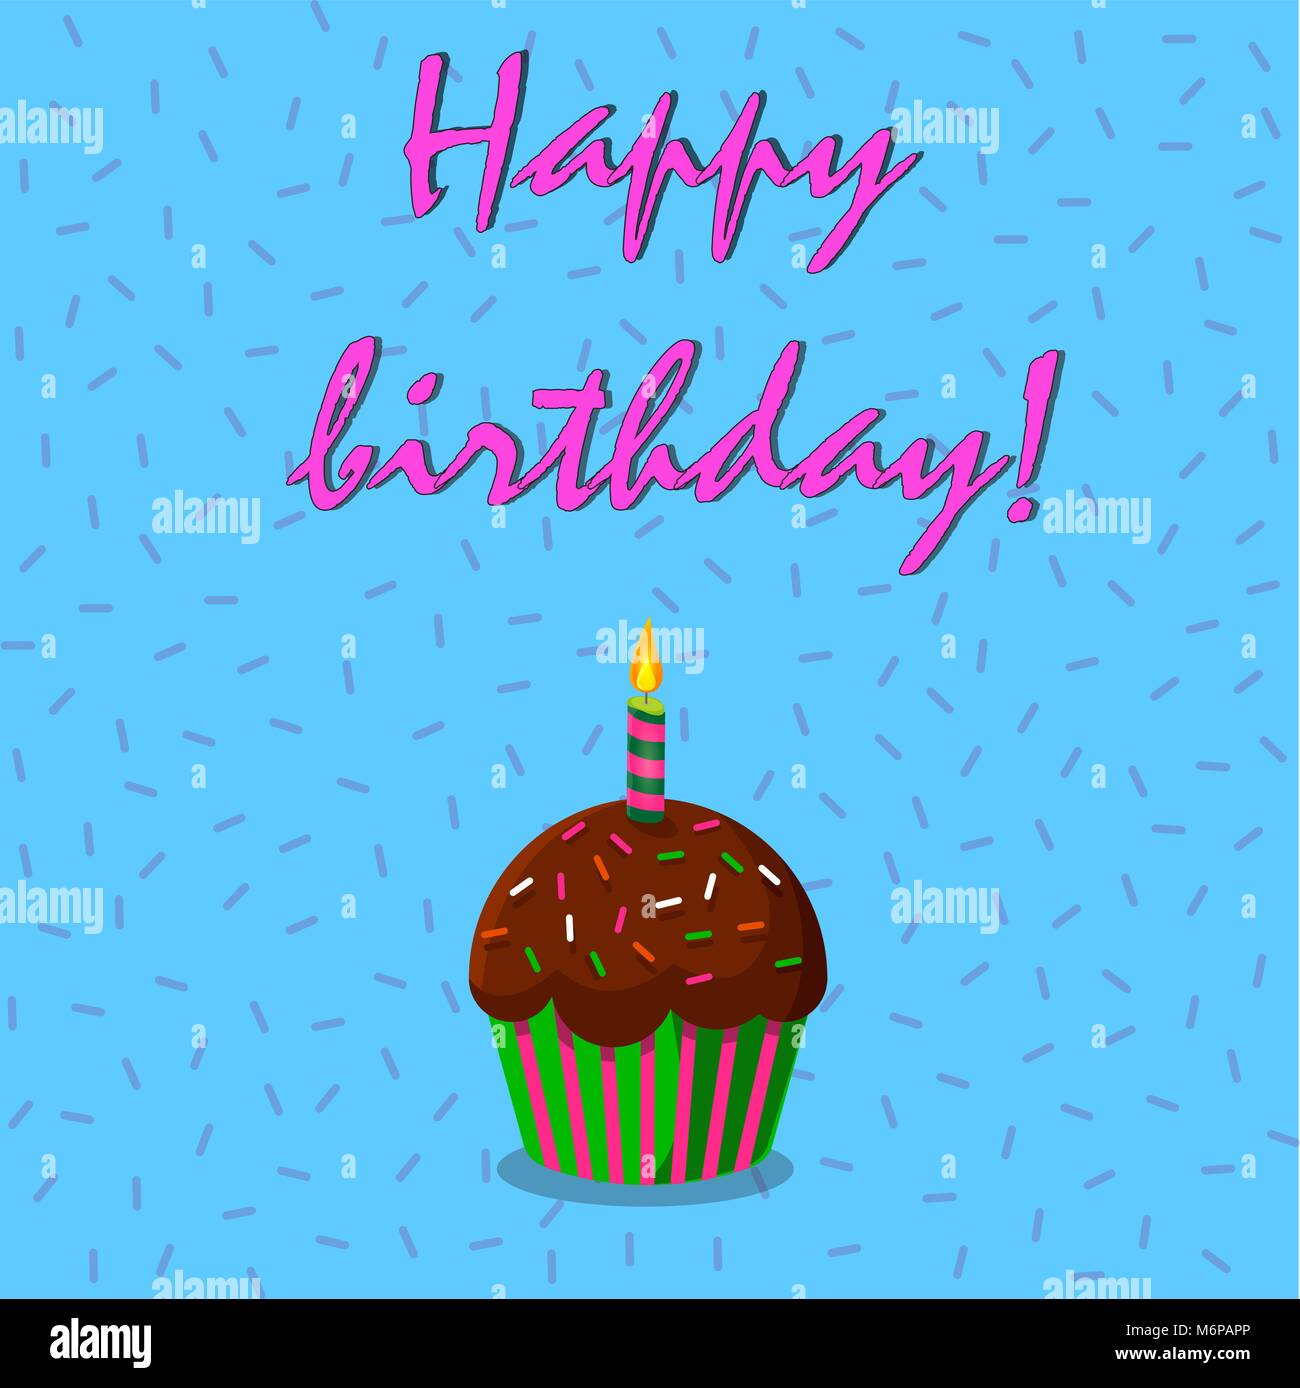 Happy Birthday Card With Strawberry Cup Cake Et Bougie Allumee Sur